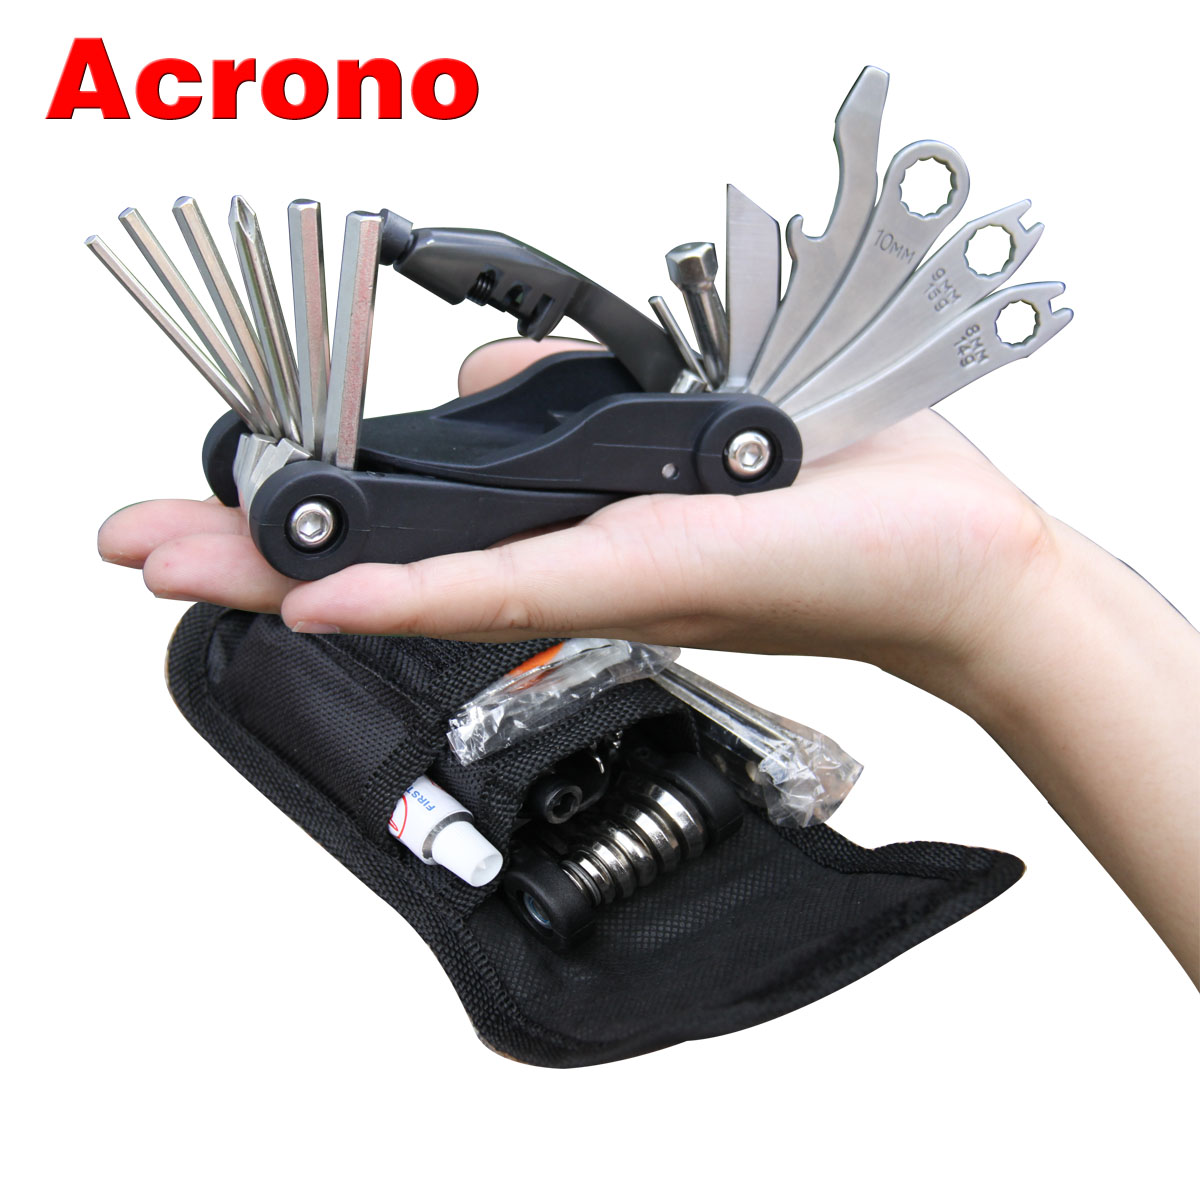 Acrono xd180 bicycle combination repair tools belt tire set levers chain device(China (Mainland))